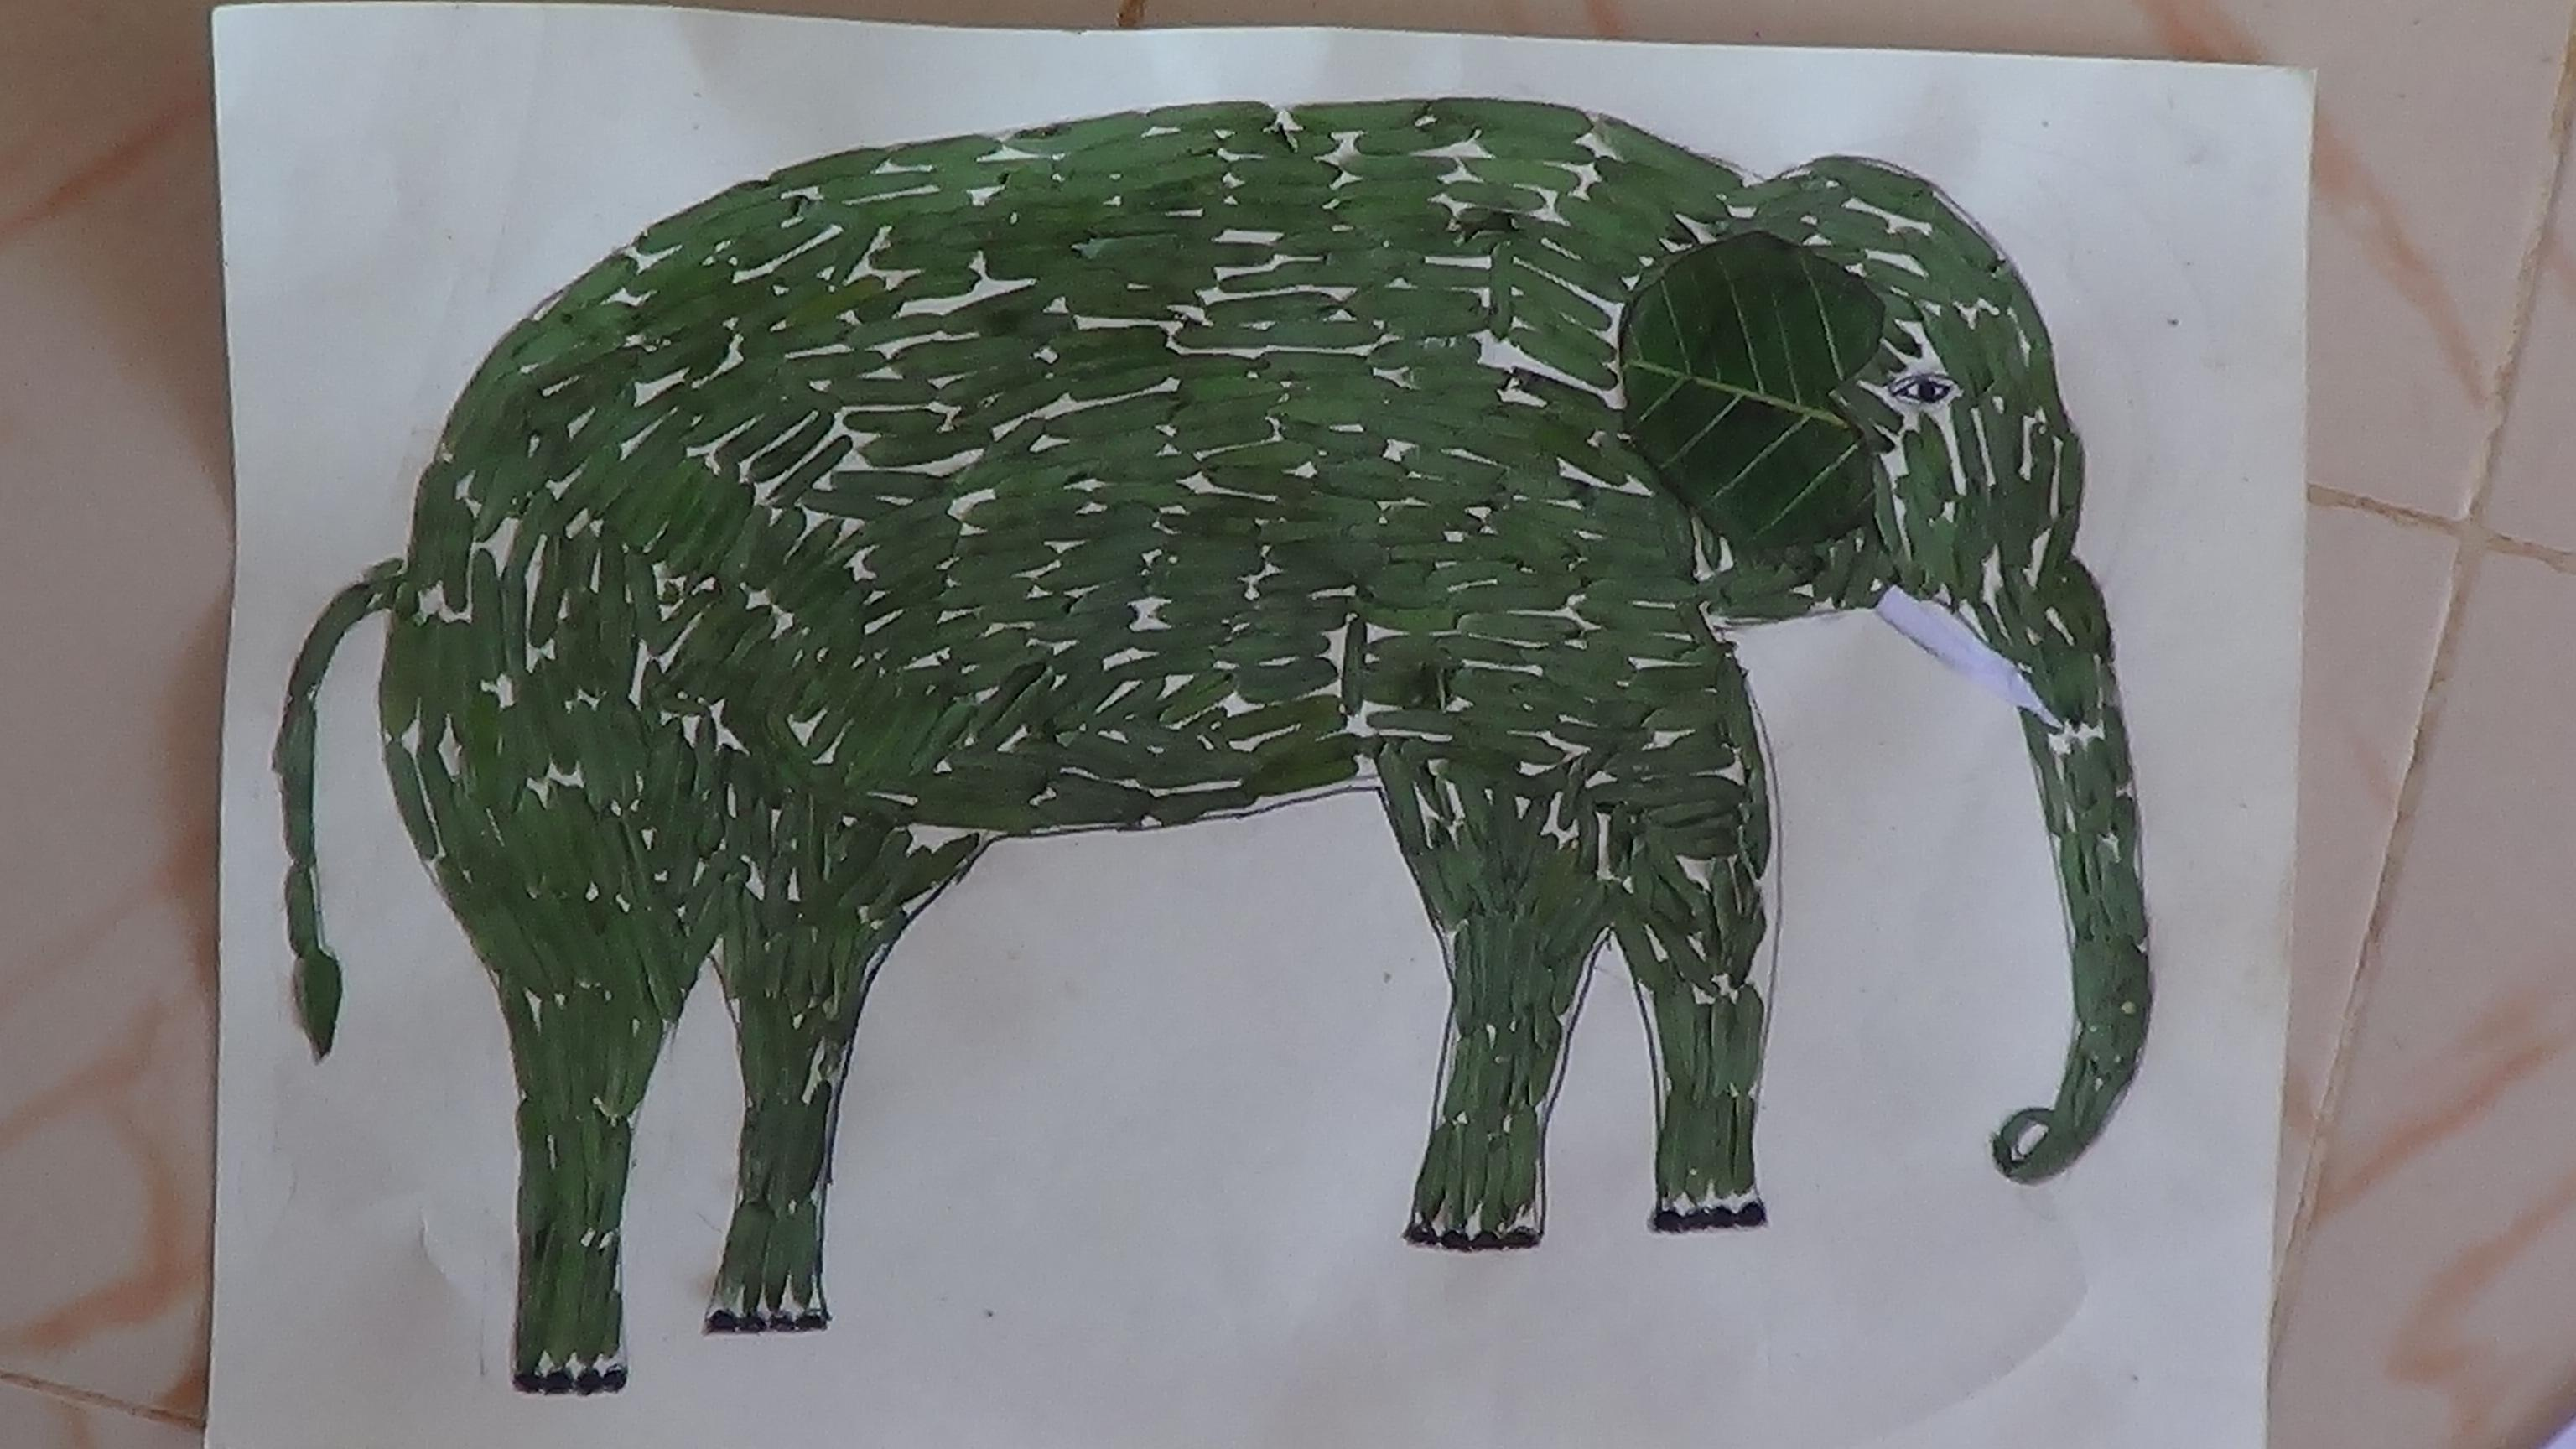 Elephant picture created of leaves